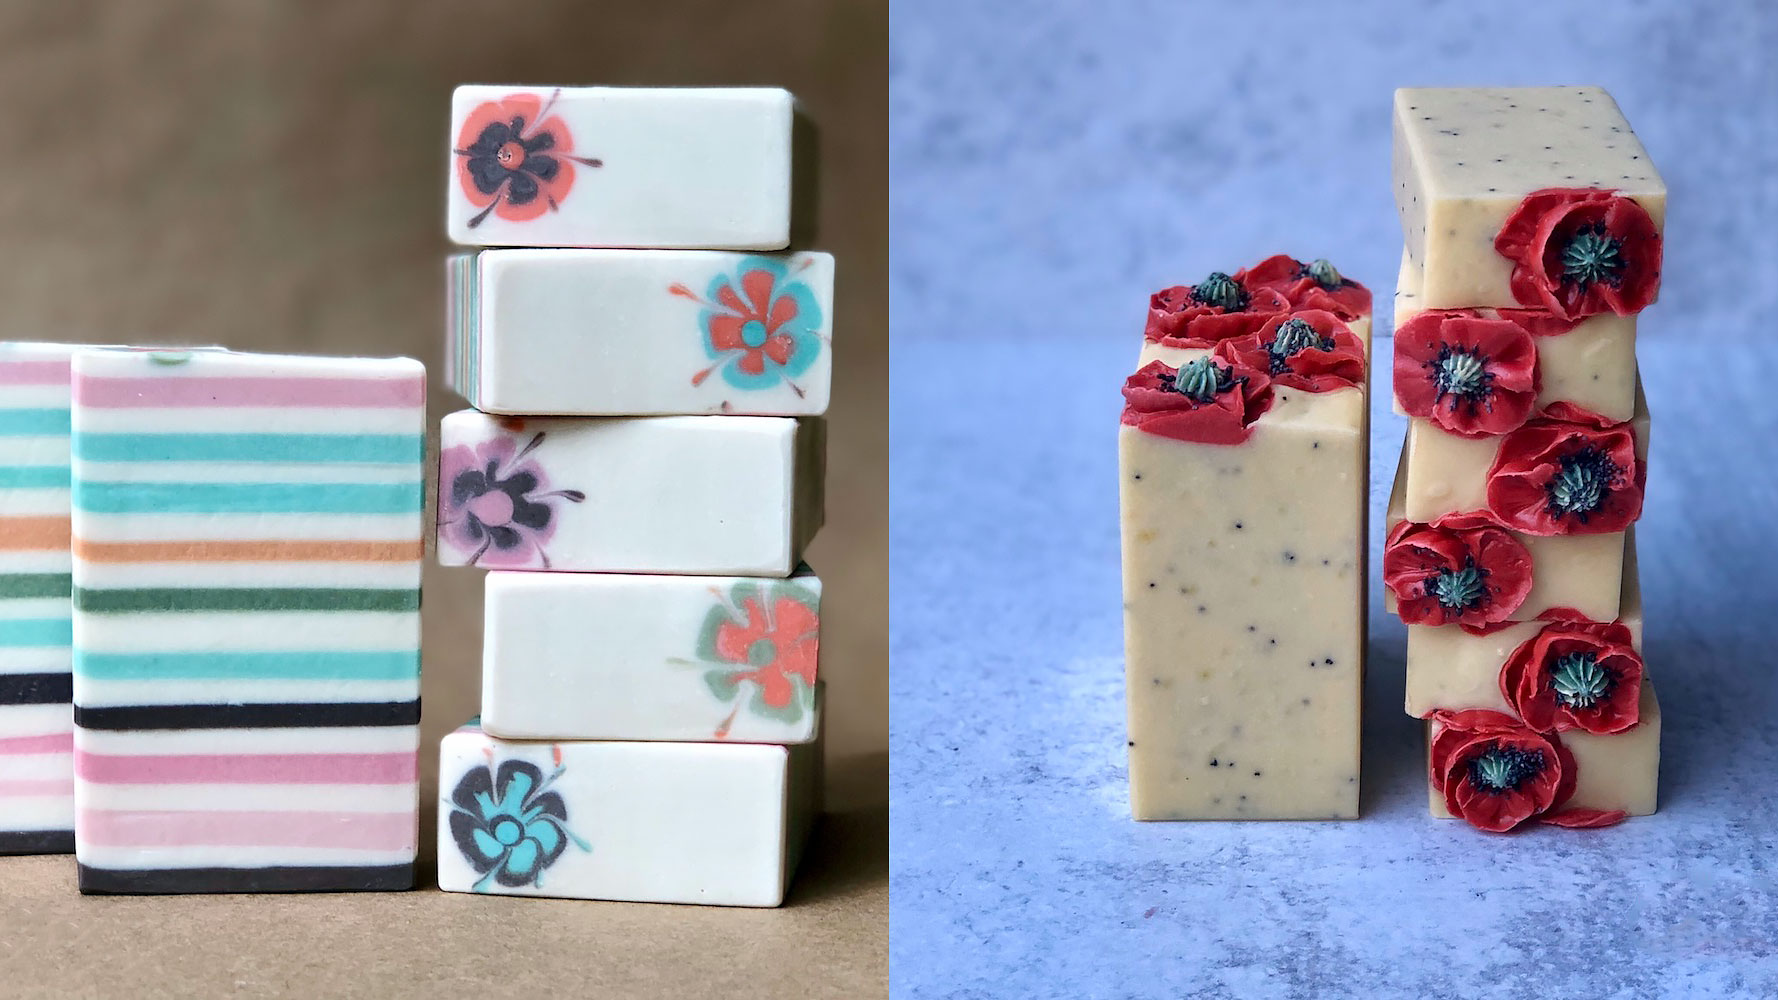 Custom Soaps from MagiDo.  You can customize the scent, colors, and design of the soap